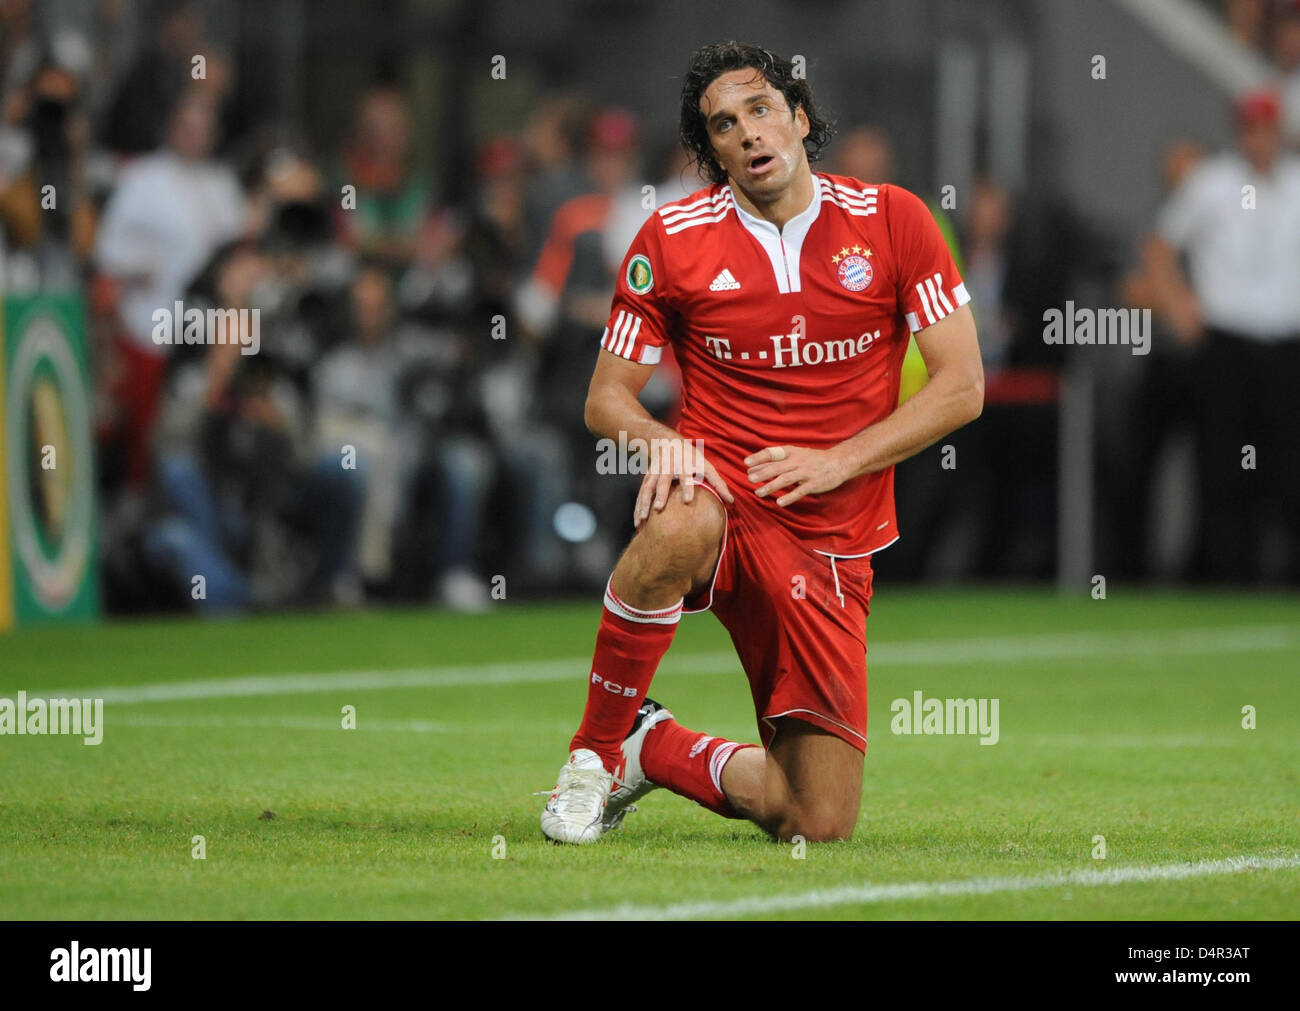 Munich?s Luca Toni knees on the pitch during the German DFB Cup second round match FC Bayern Munich vs Rot-Weiss - Stock Image